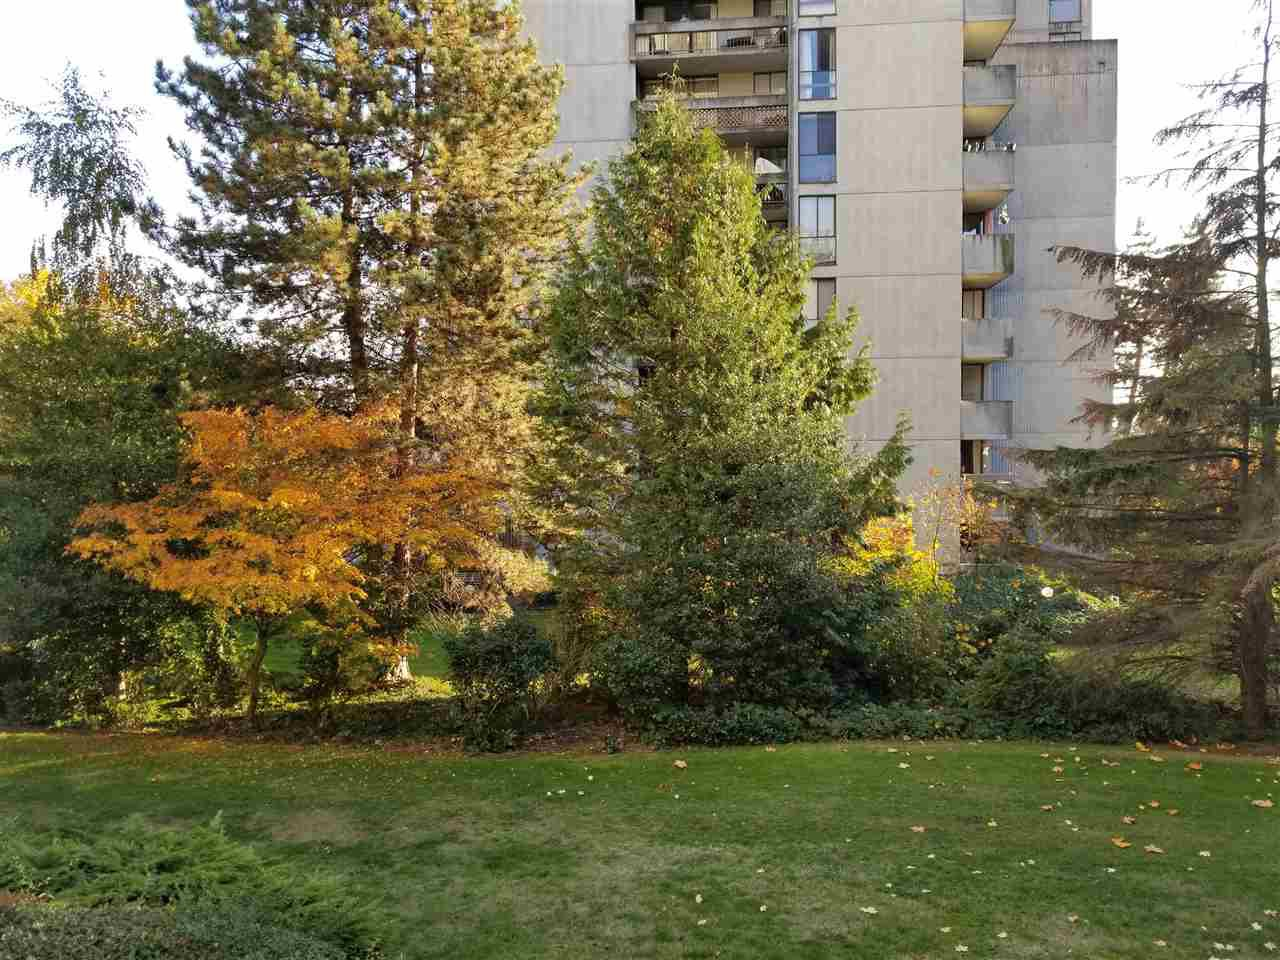 Main Photo: 206 6689 WILLINGDON AVENUE in Burnaby: Metrotown Condo for sale (Burnaby South)  : MLS®# R2218866